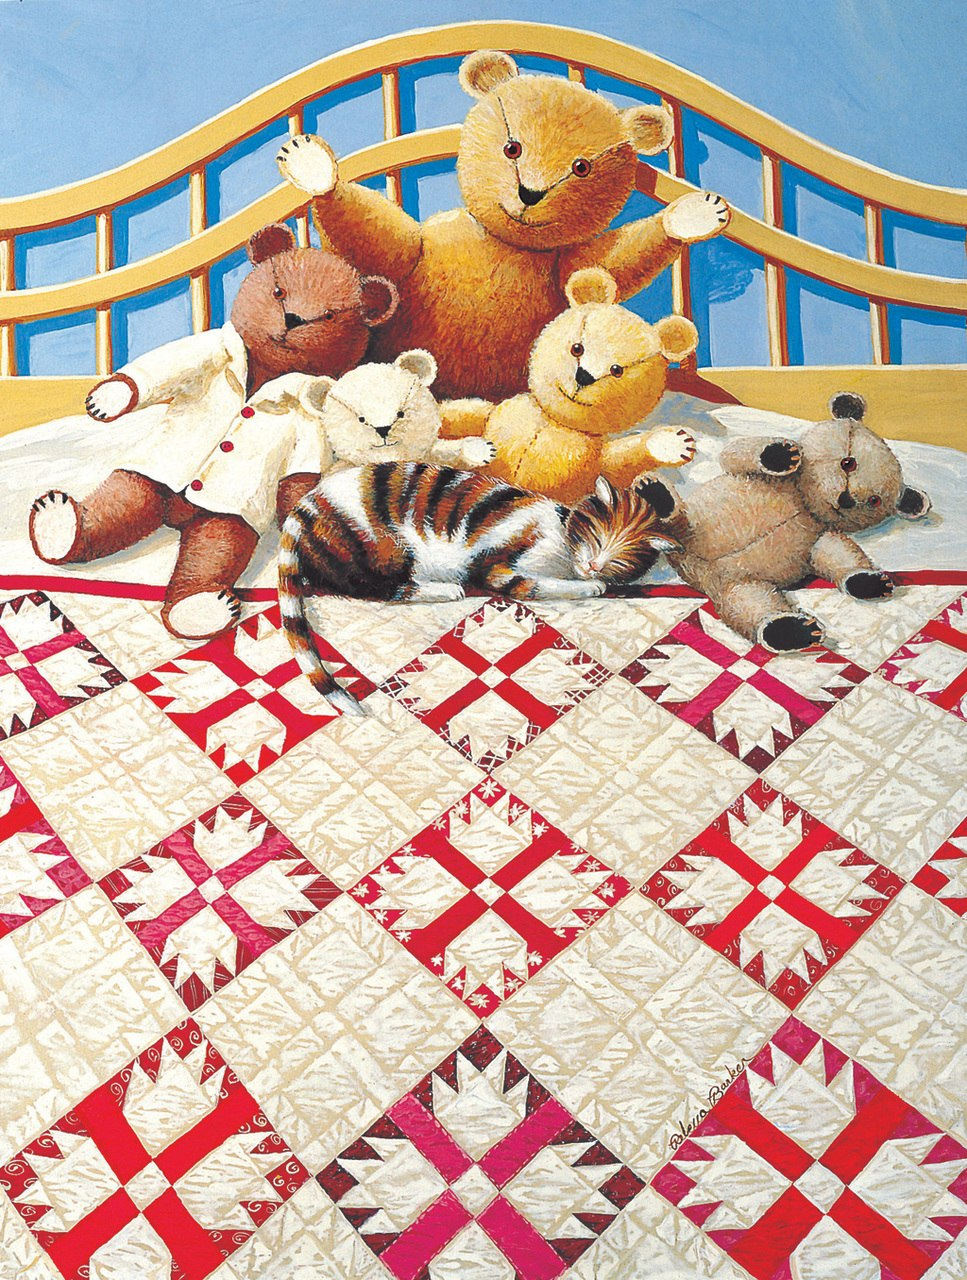 Bear Paw - 500pc Jigsaw Puzzle by SunsOut